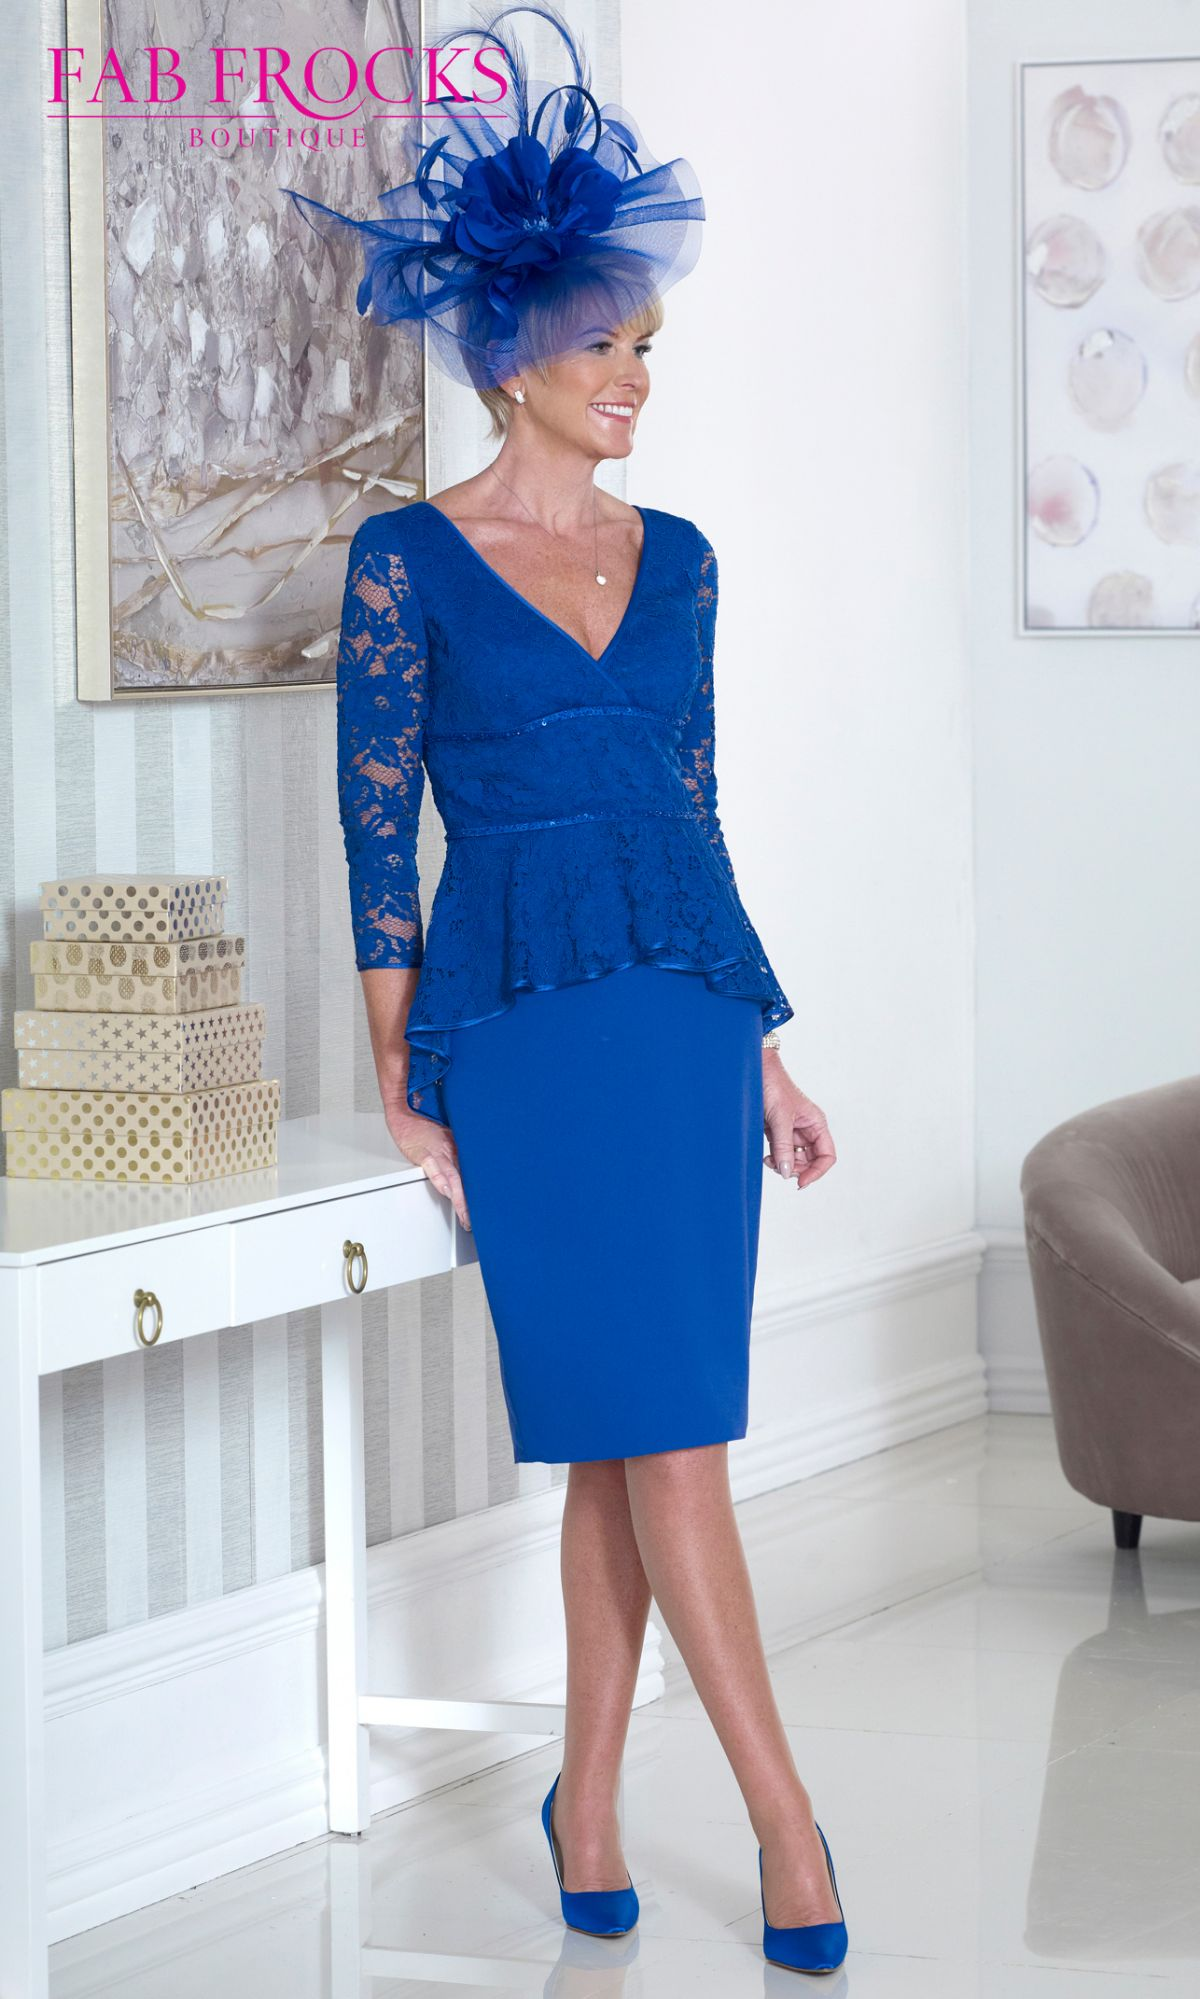 Fab Frocks Boutique-Image-10